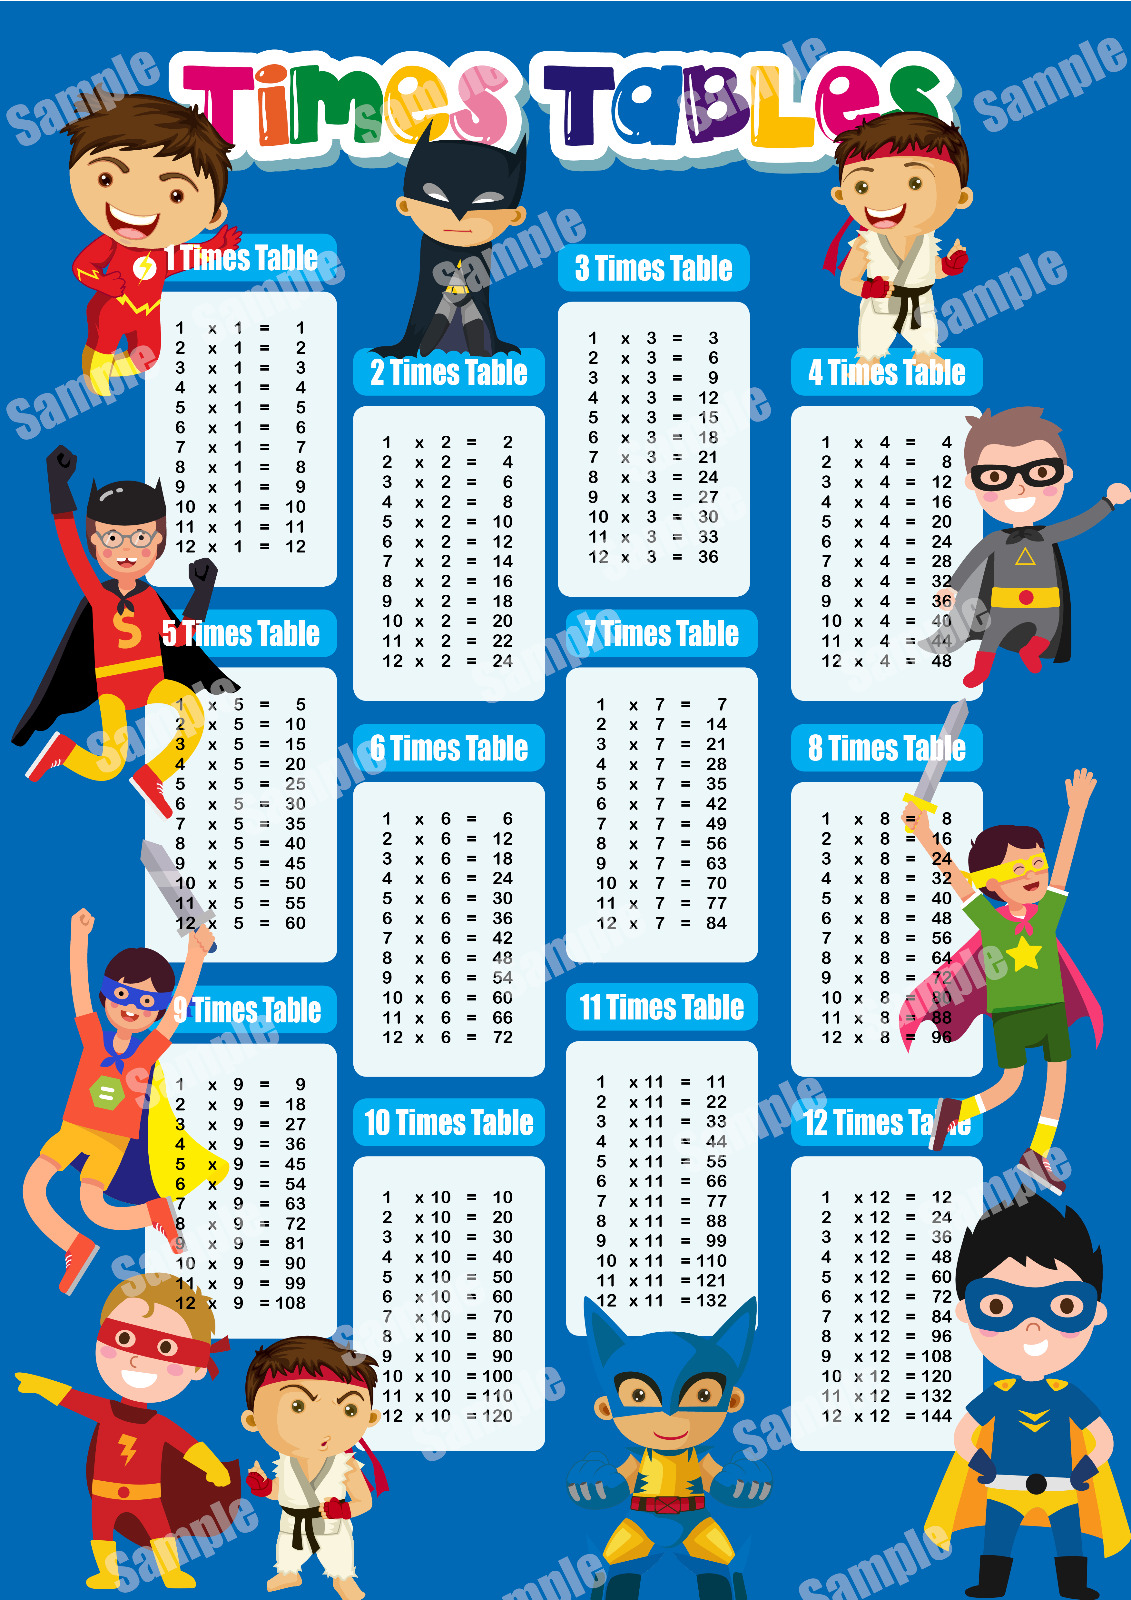 TIMES TABLES POSTER Maths Educational Wall Chart | Boys Kids Childs ...